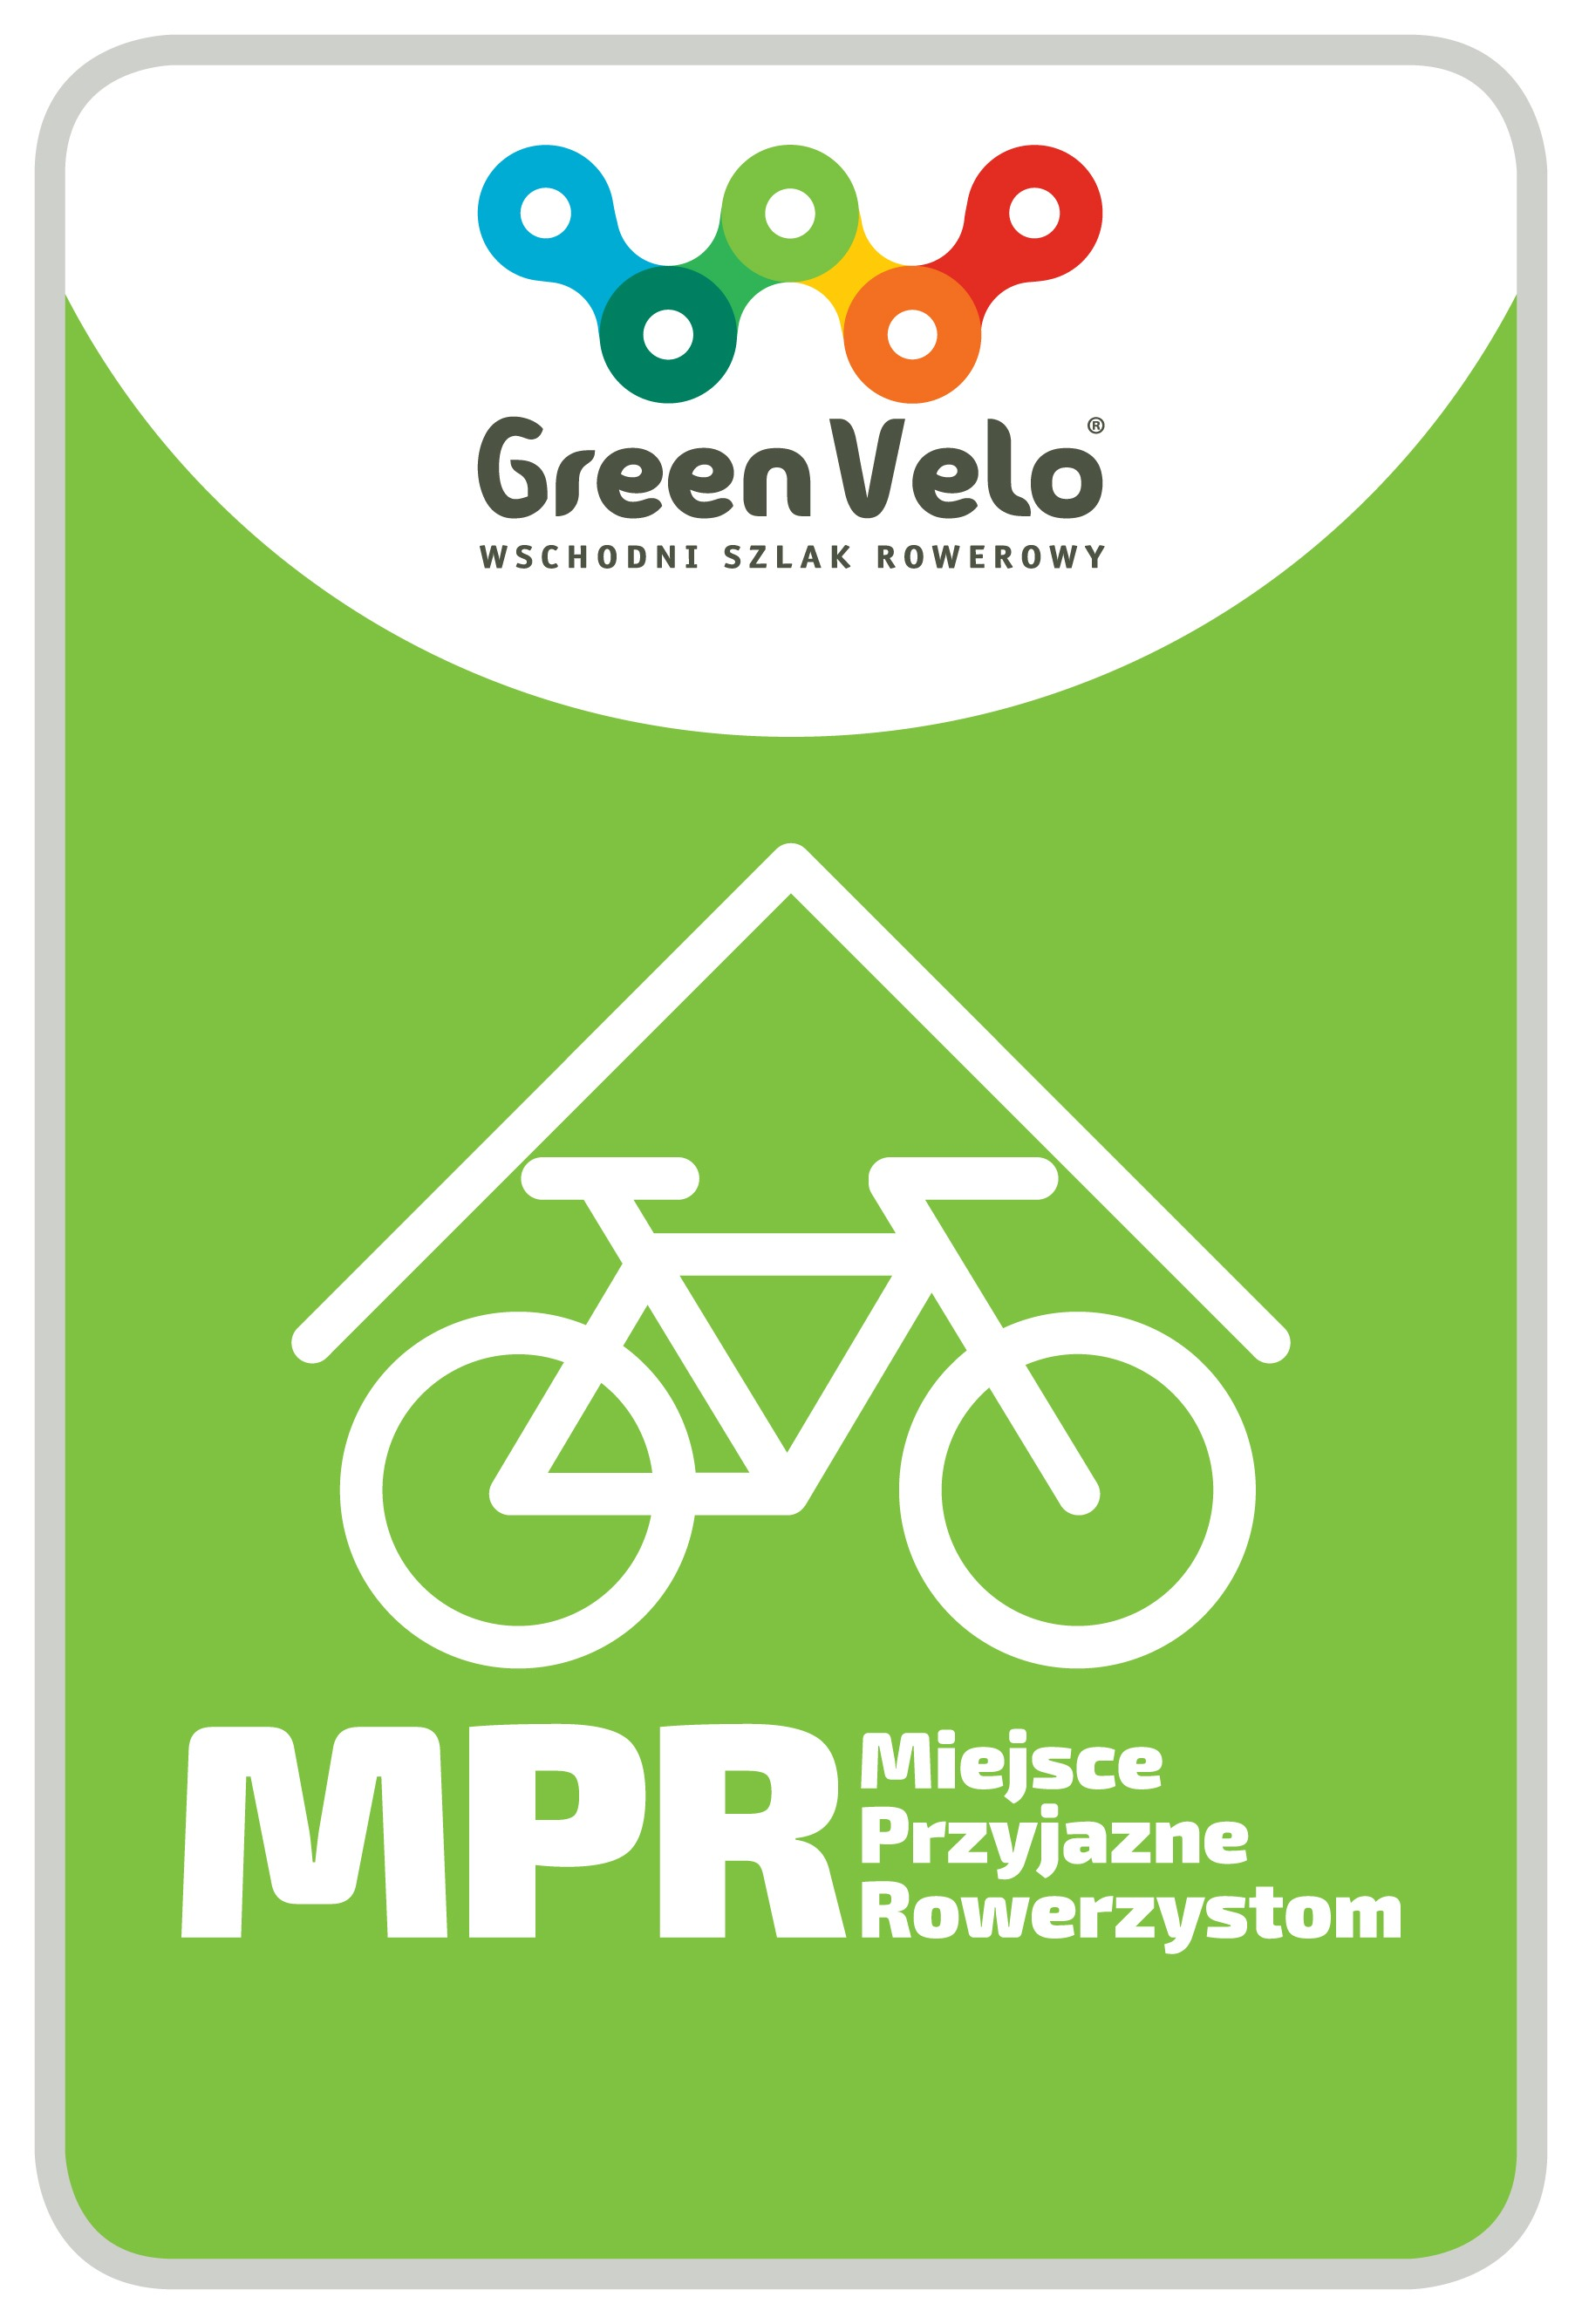 Logo Miejsce Przyjazne Rowerzystom GREEN VELO